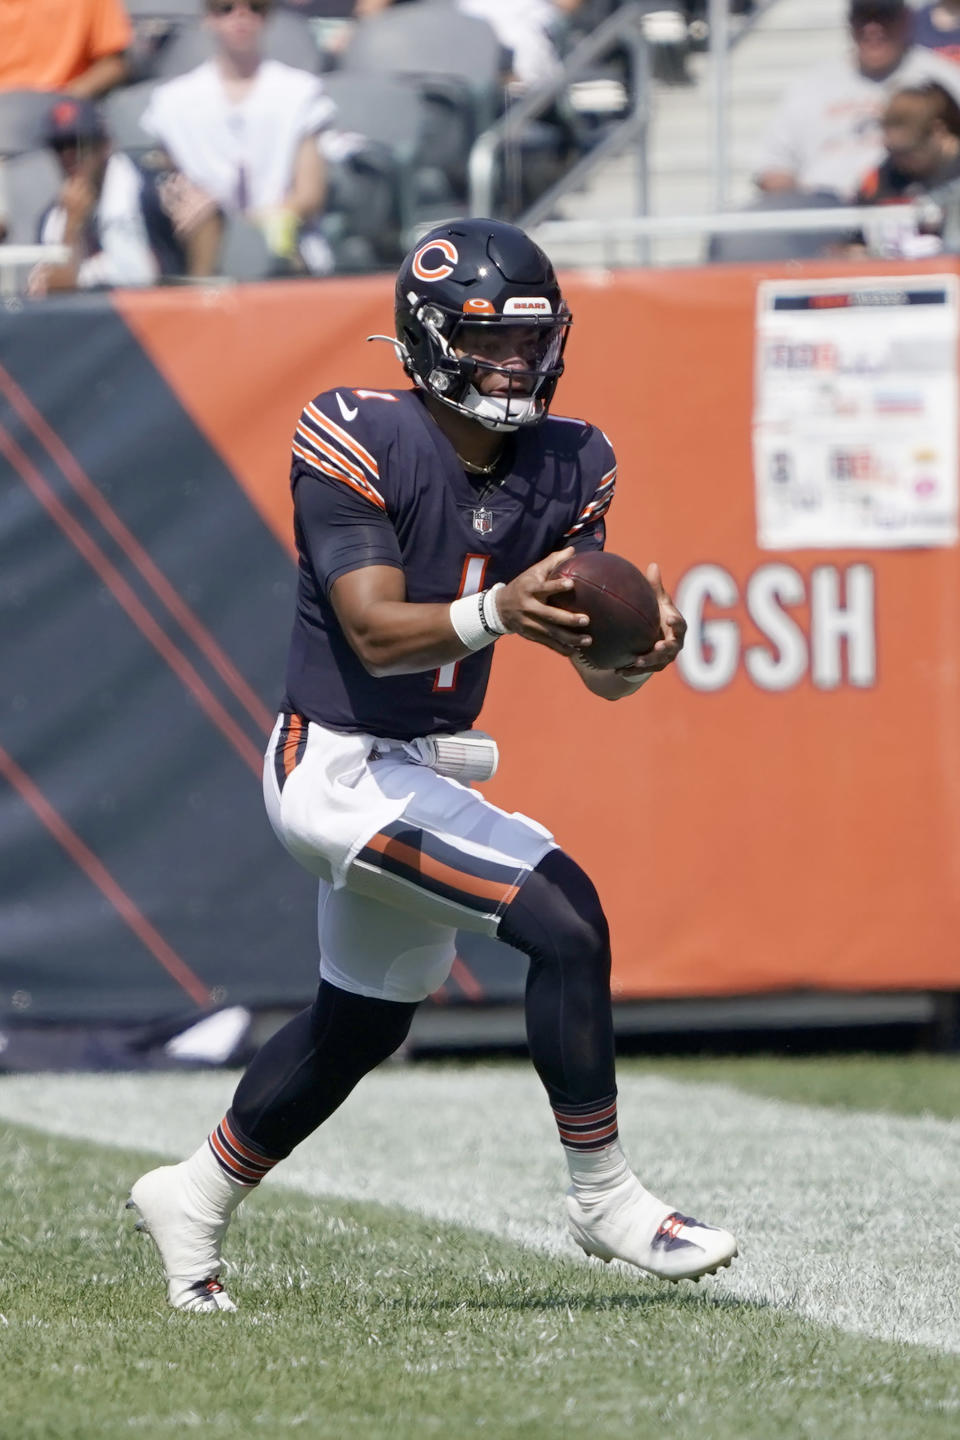 Chicago Bears quarterback Justin Fields carries the ball during the first half of an NFL football game against the Cincinnati Bengals Sunday, Sept. 19, 2021, in Chicago. (AP Photo/David Banks)